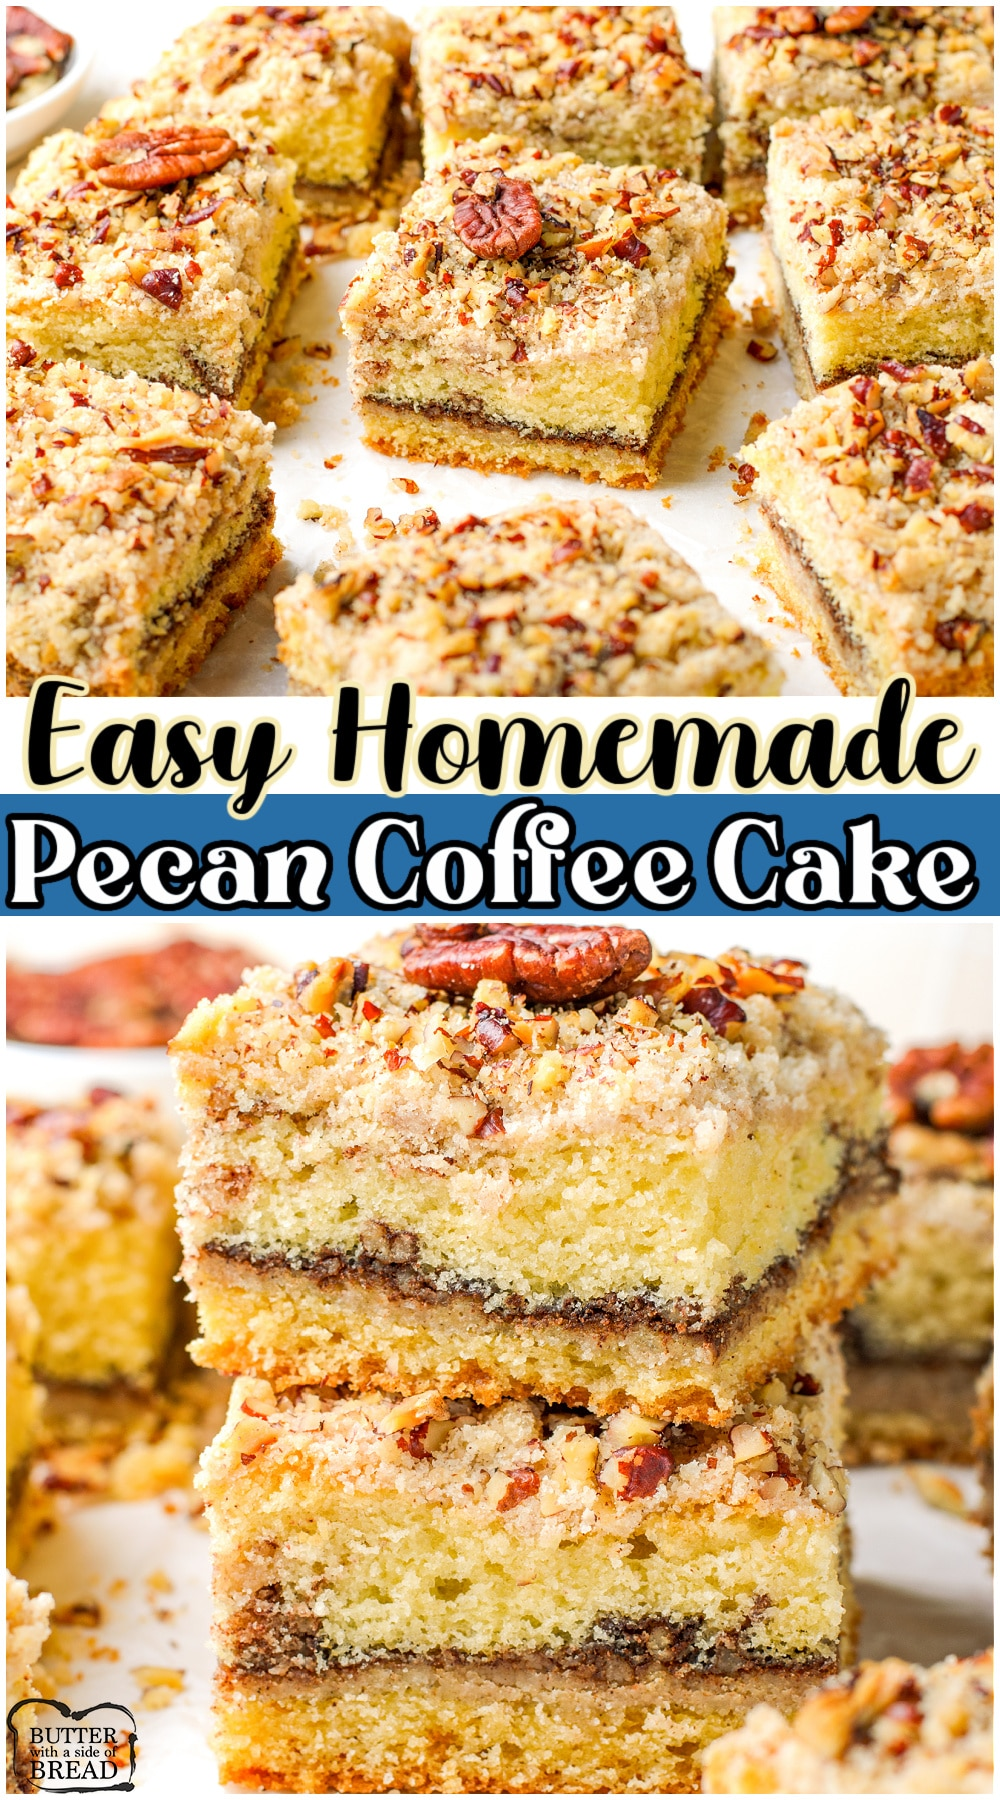 Homemade Pecan Coffee Cake made easy with classic ingredients, including a buttery spice pecan streusel. Fantastic flavor in this simple breakfast cake recipe that everyone loves!